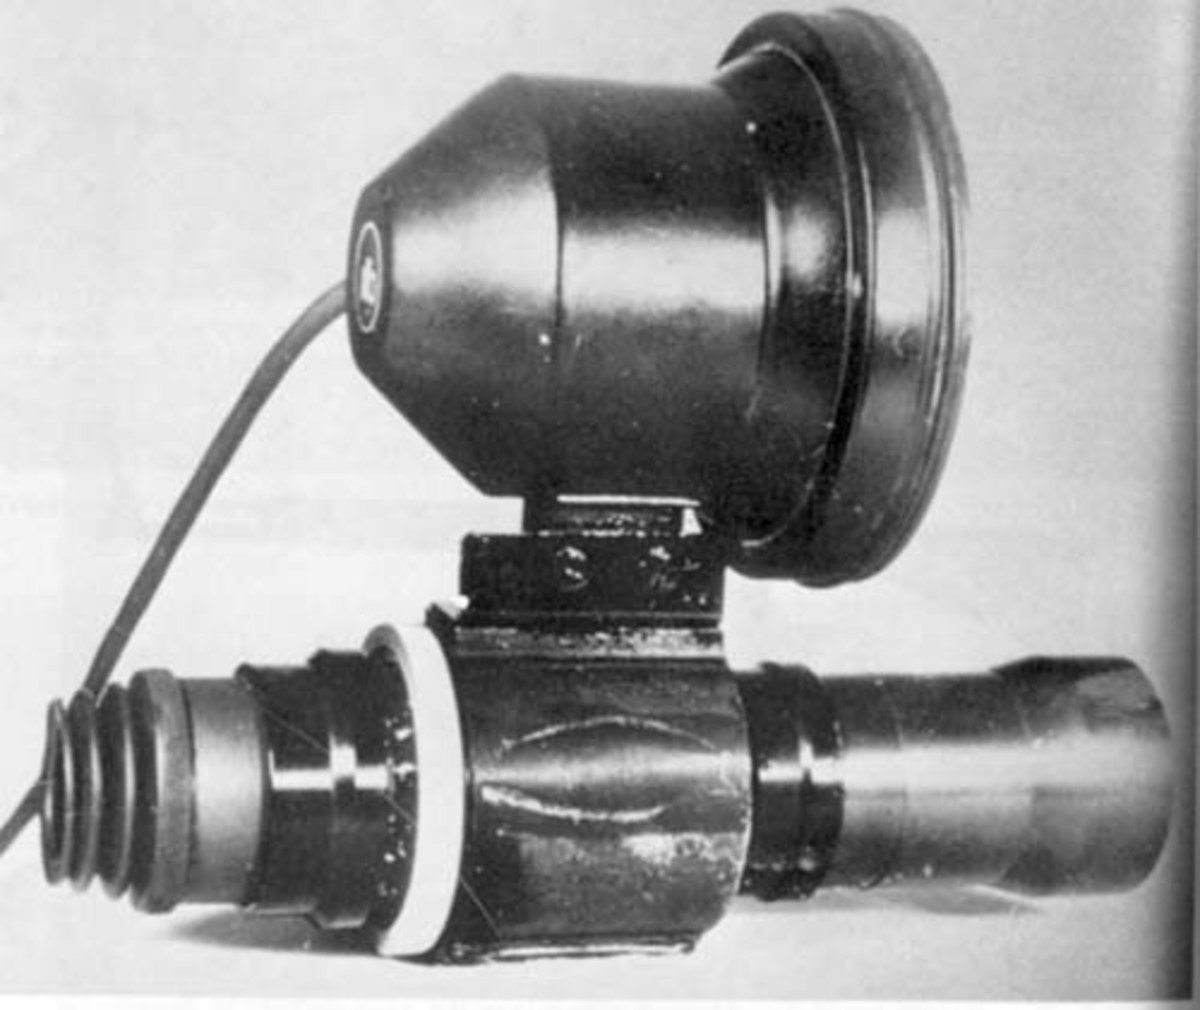 "Zielgerät 1229 infra-red aiming device, also known by its codename Vampir (""vampire"") sniper scope. In the Ardennes most German tanks also had infra-red vision."